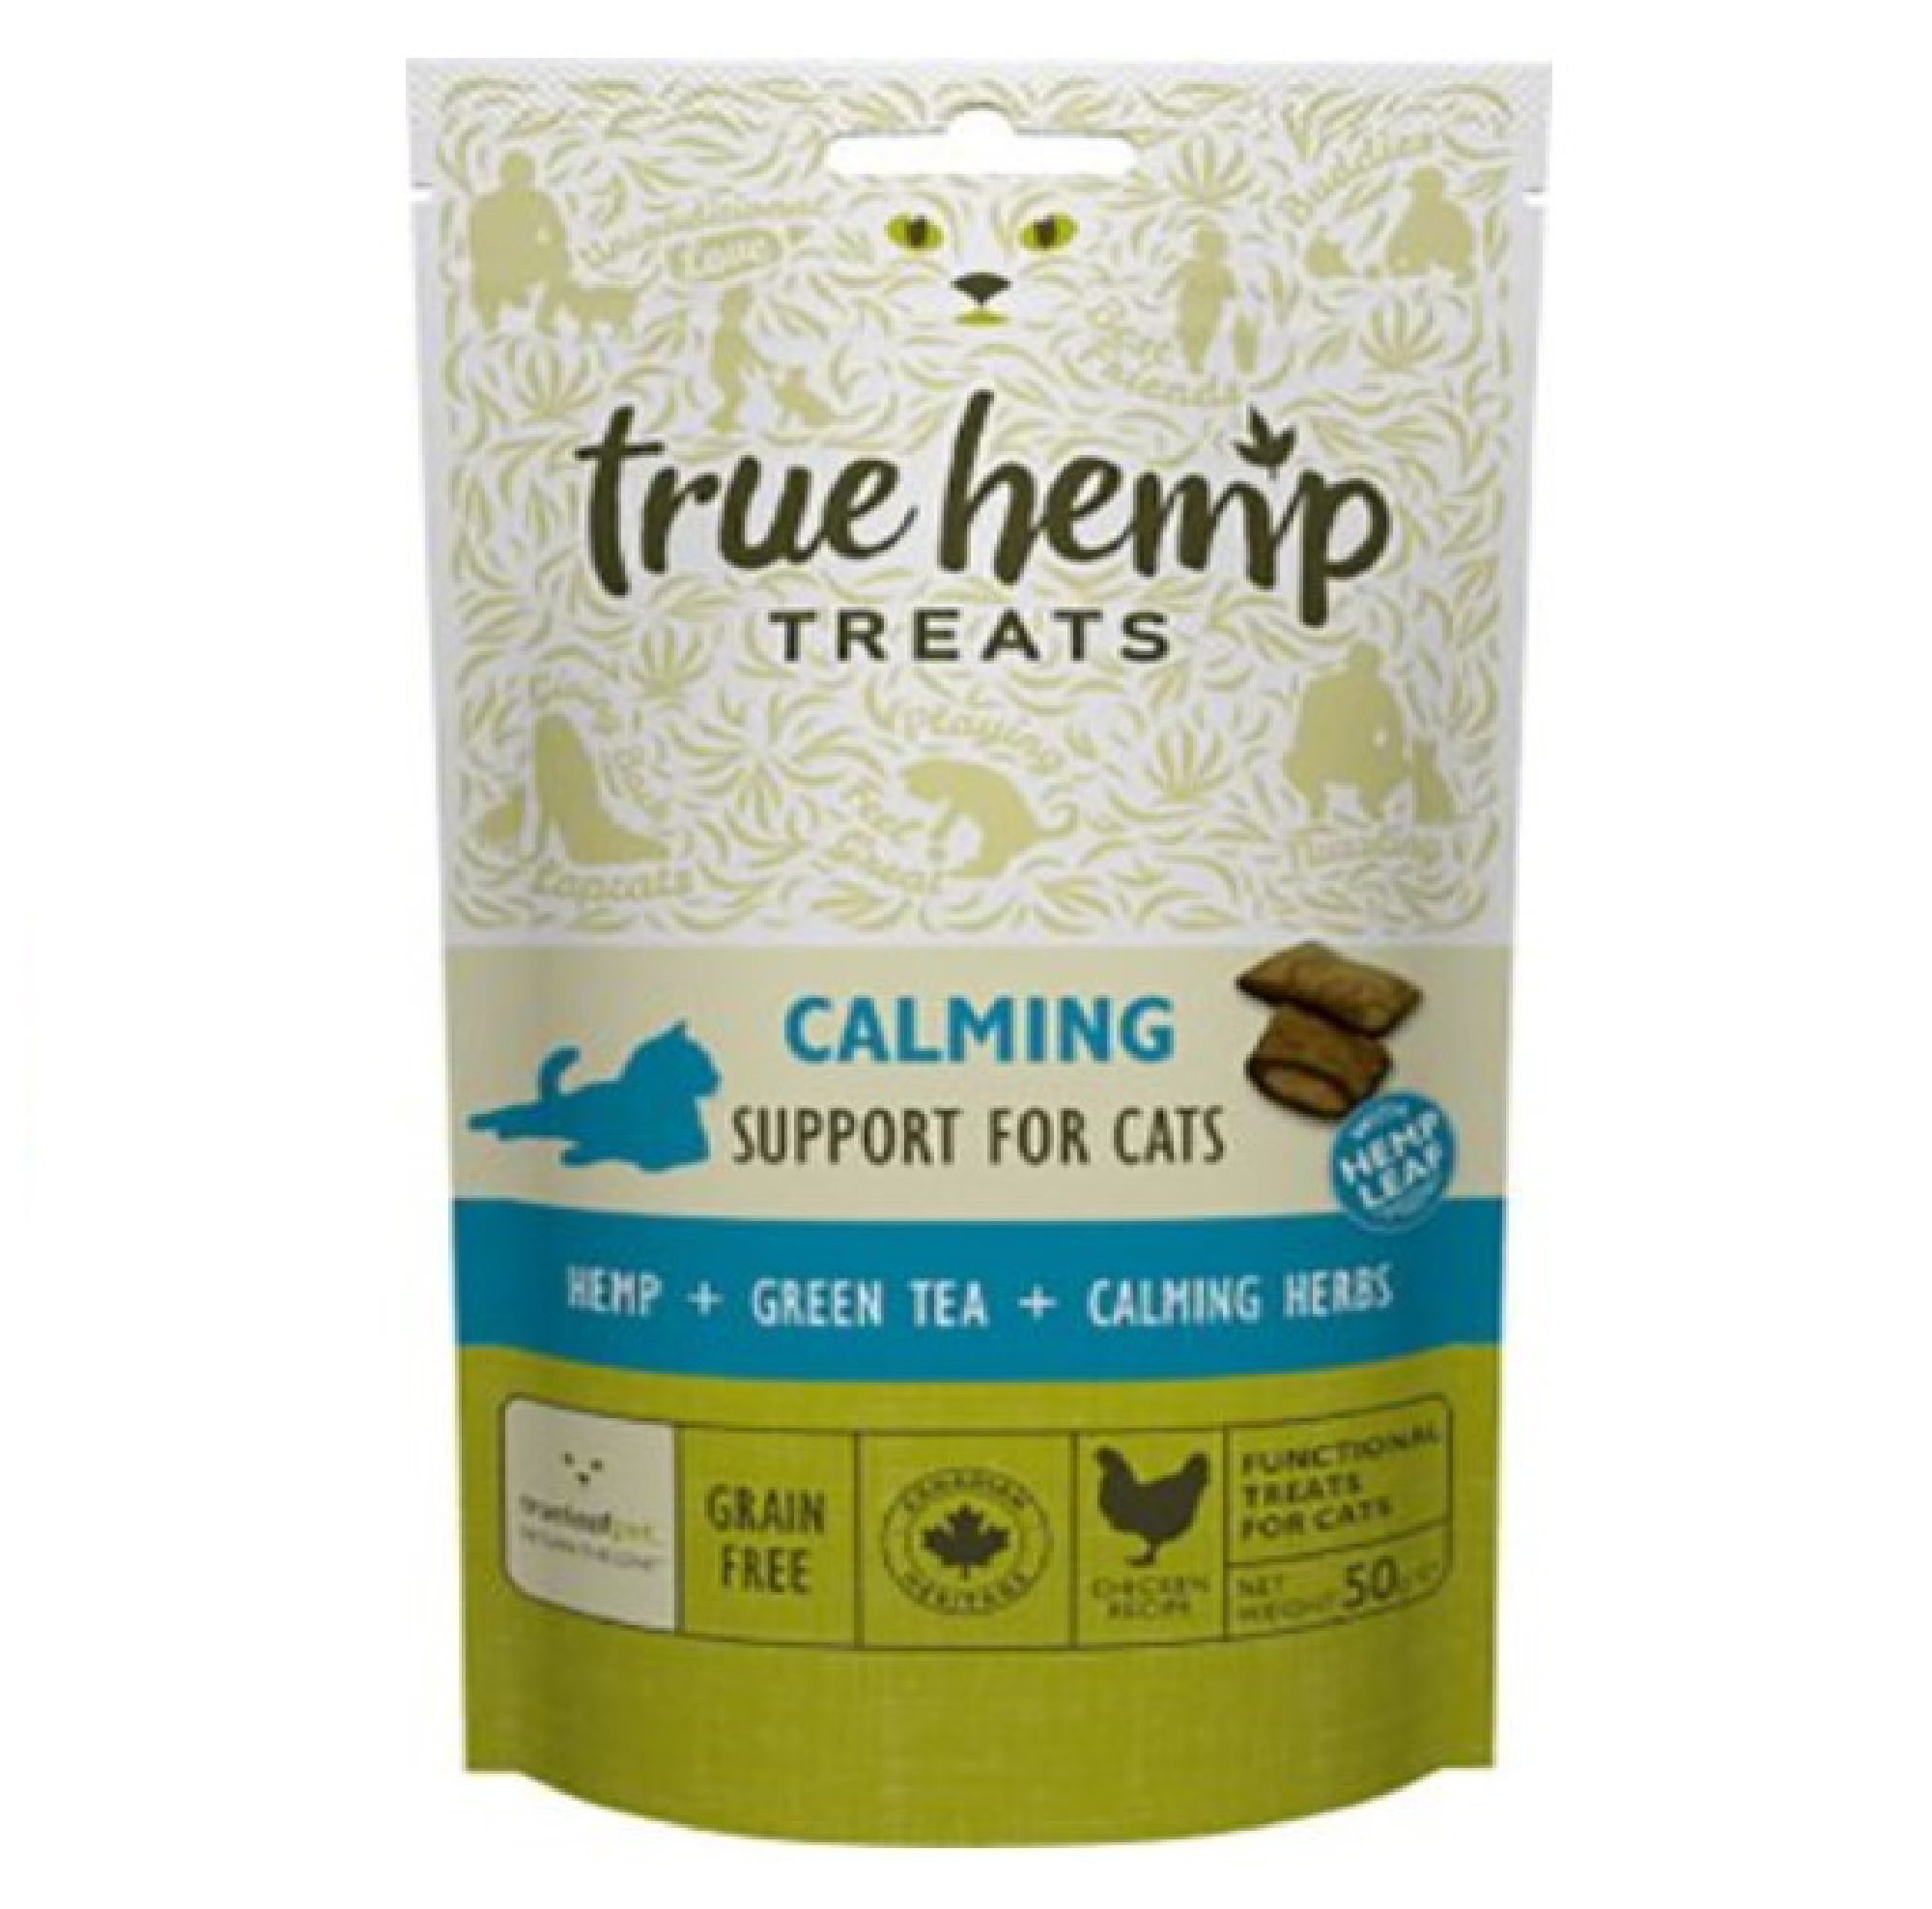 TRUE HEMP Calming Cat Treat